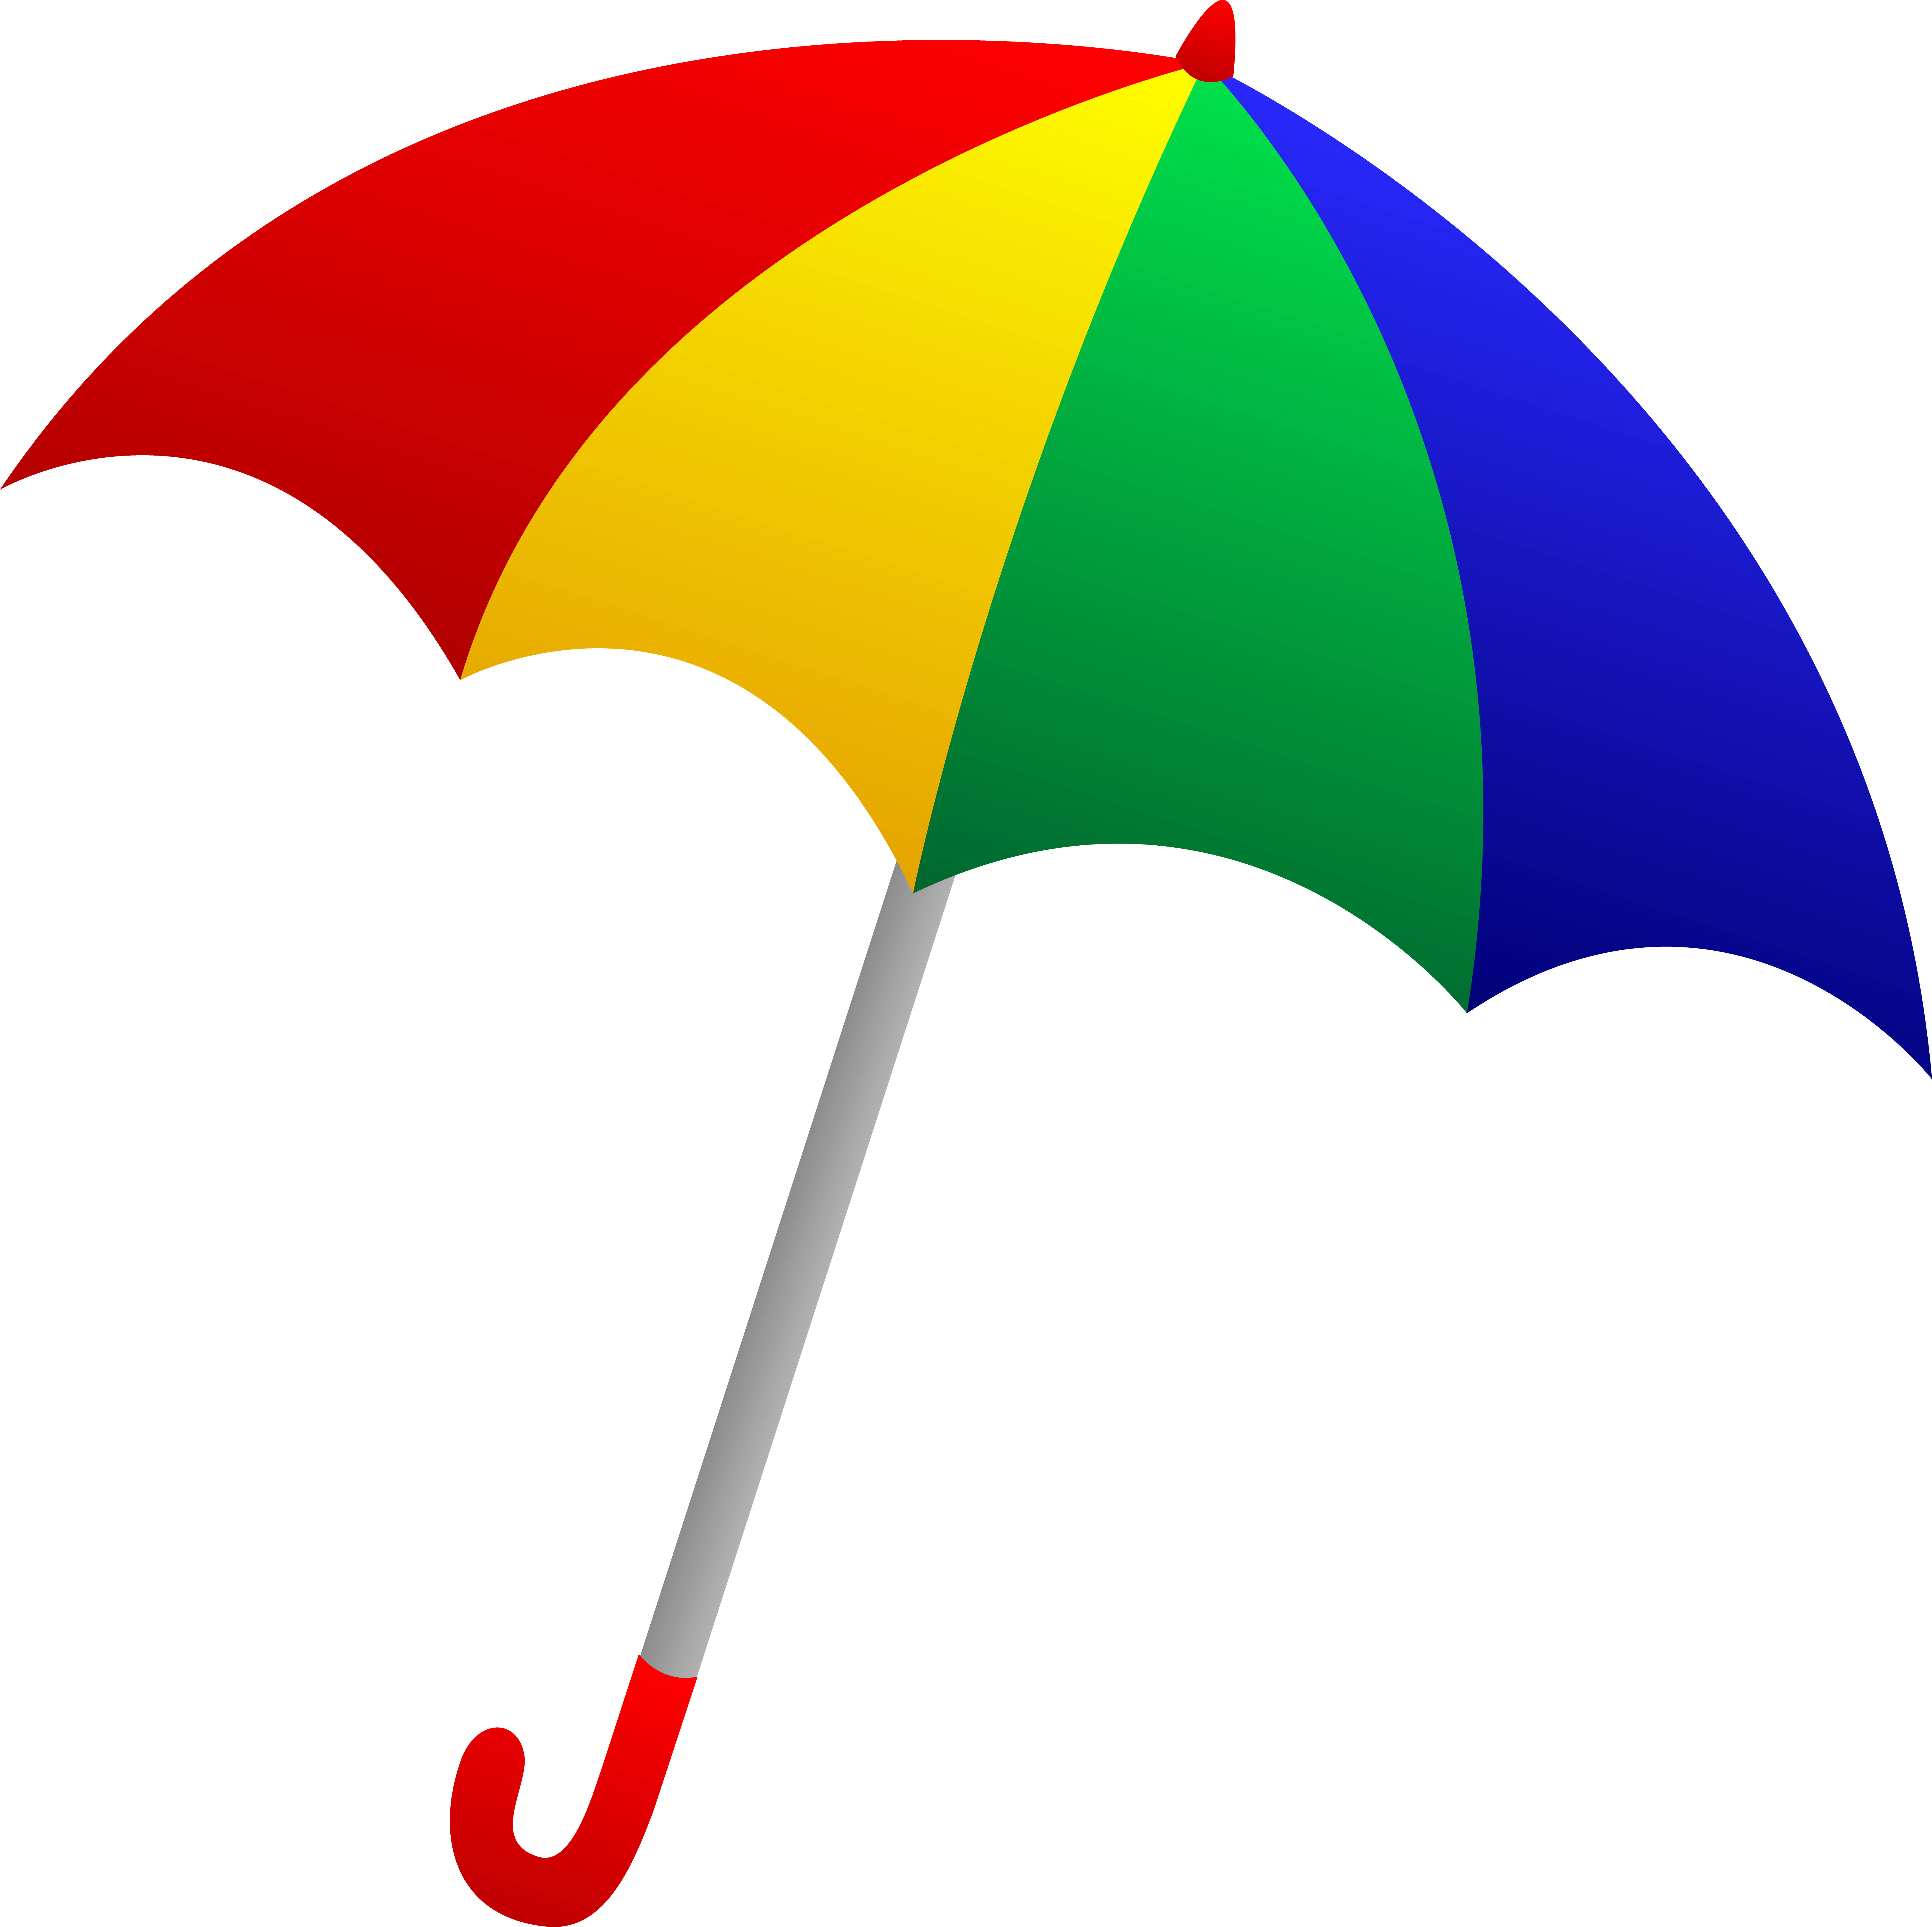 Wet clipart transparent. Umbrella clip art free